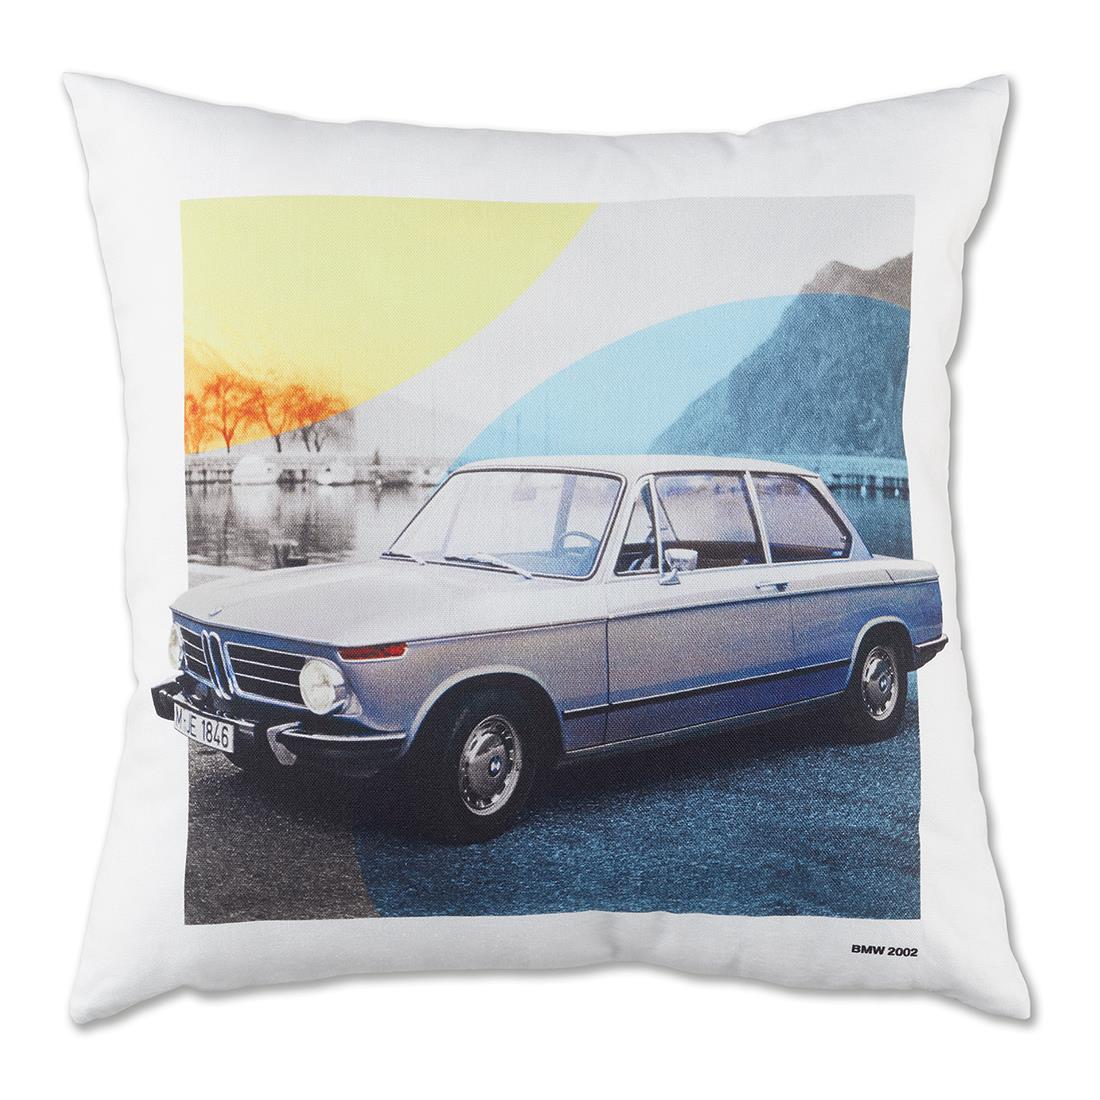 BMW Classic Pillow BMW 2002